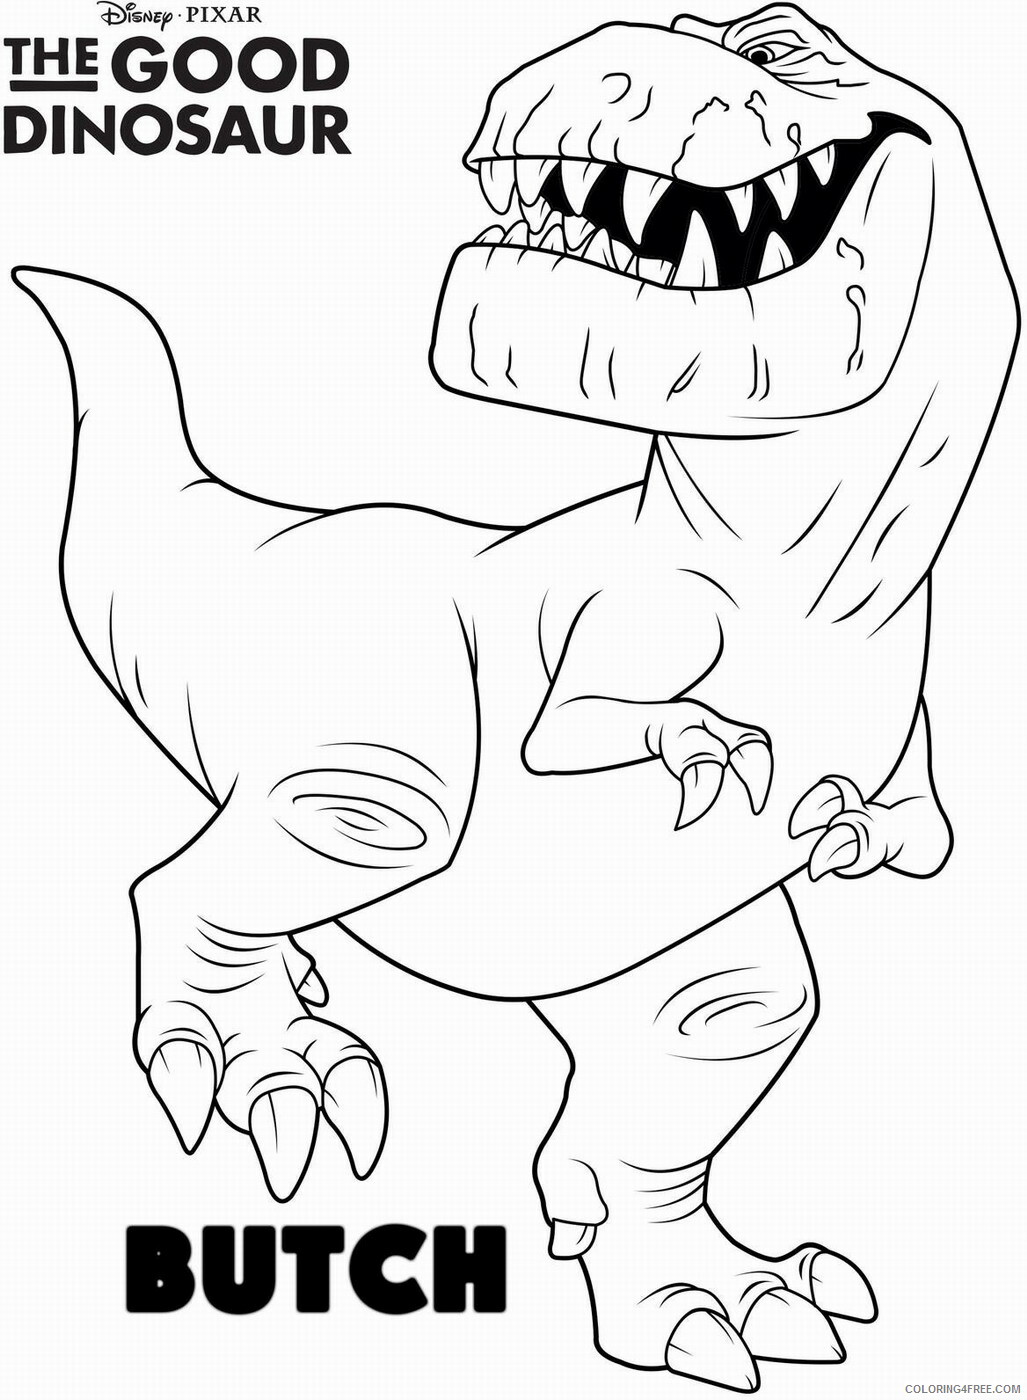 The Good Dinosaur Coloring Pages TV Film Printable 2020 08835 Coloring4free